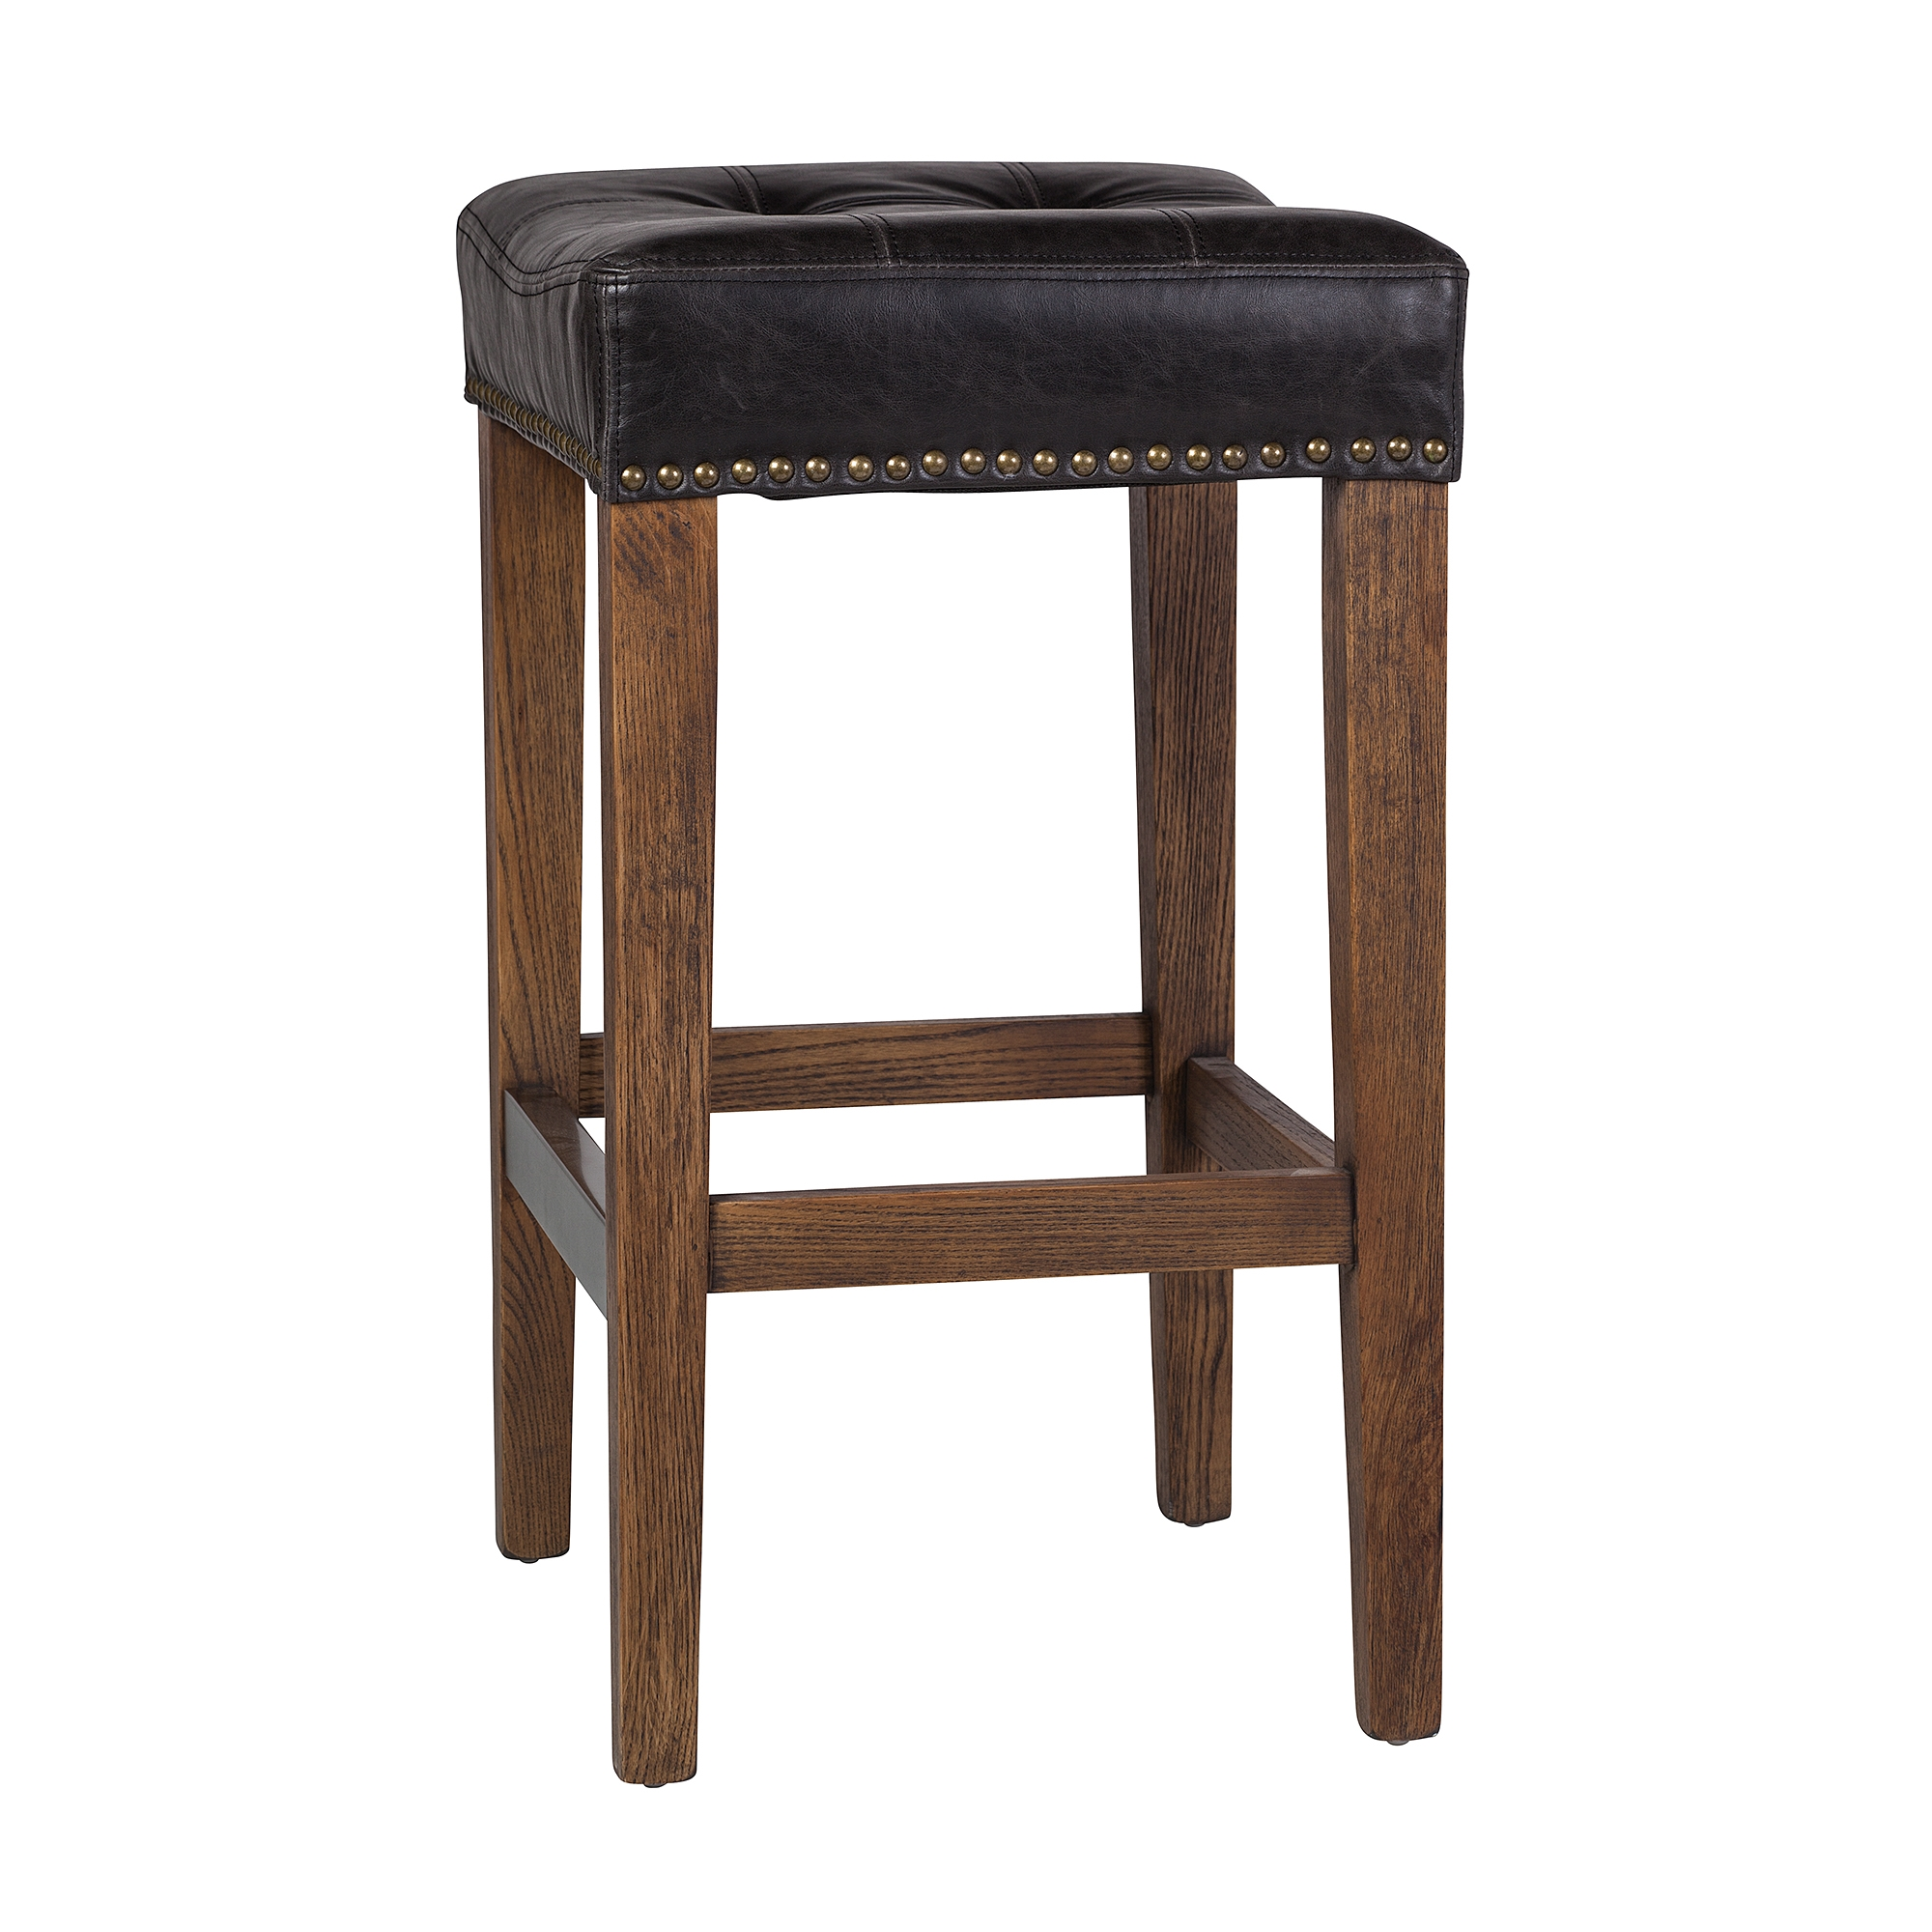 counter product stool morgana morganabeigetuftedcounterstool tufted onyx cfm black hayneedle options stools